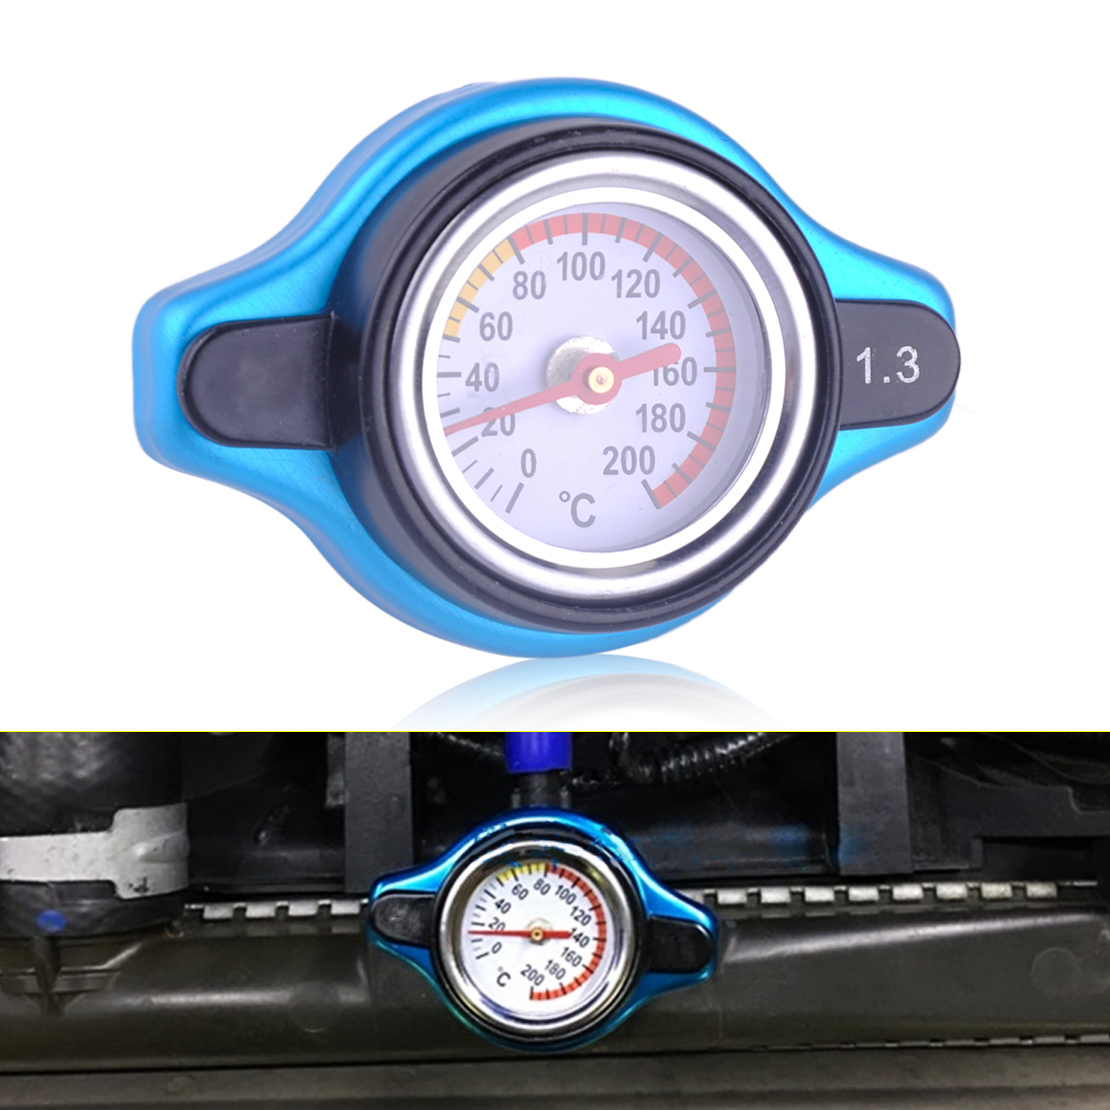 DWCX Car Aluminum Alloy Safe Thermostatic Gauge Radiator Cap Cover 1.3 bar Small Head Water Temp Meter For VW BMW Audi <font><b>Honda</b></font> Kia image